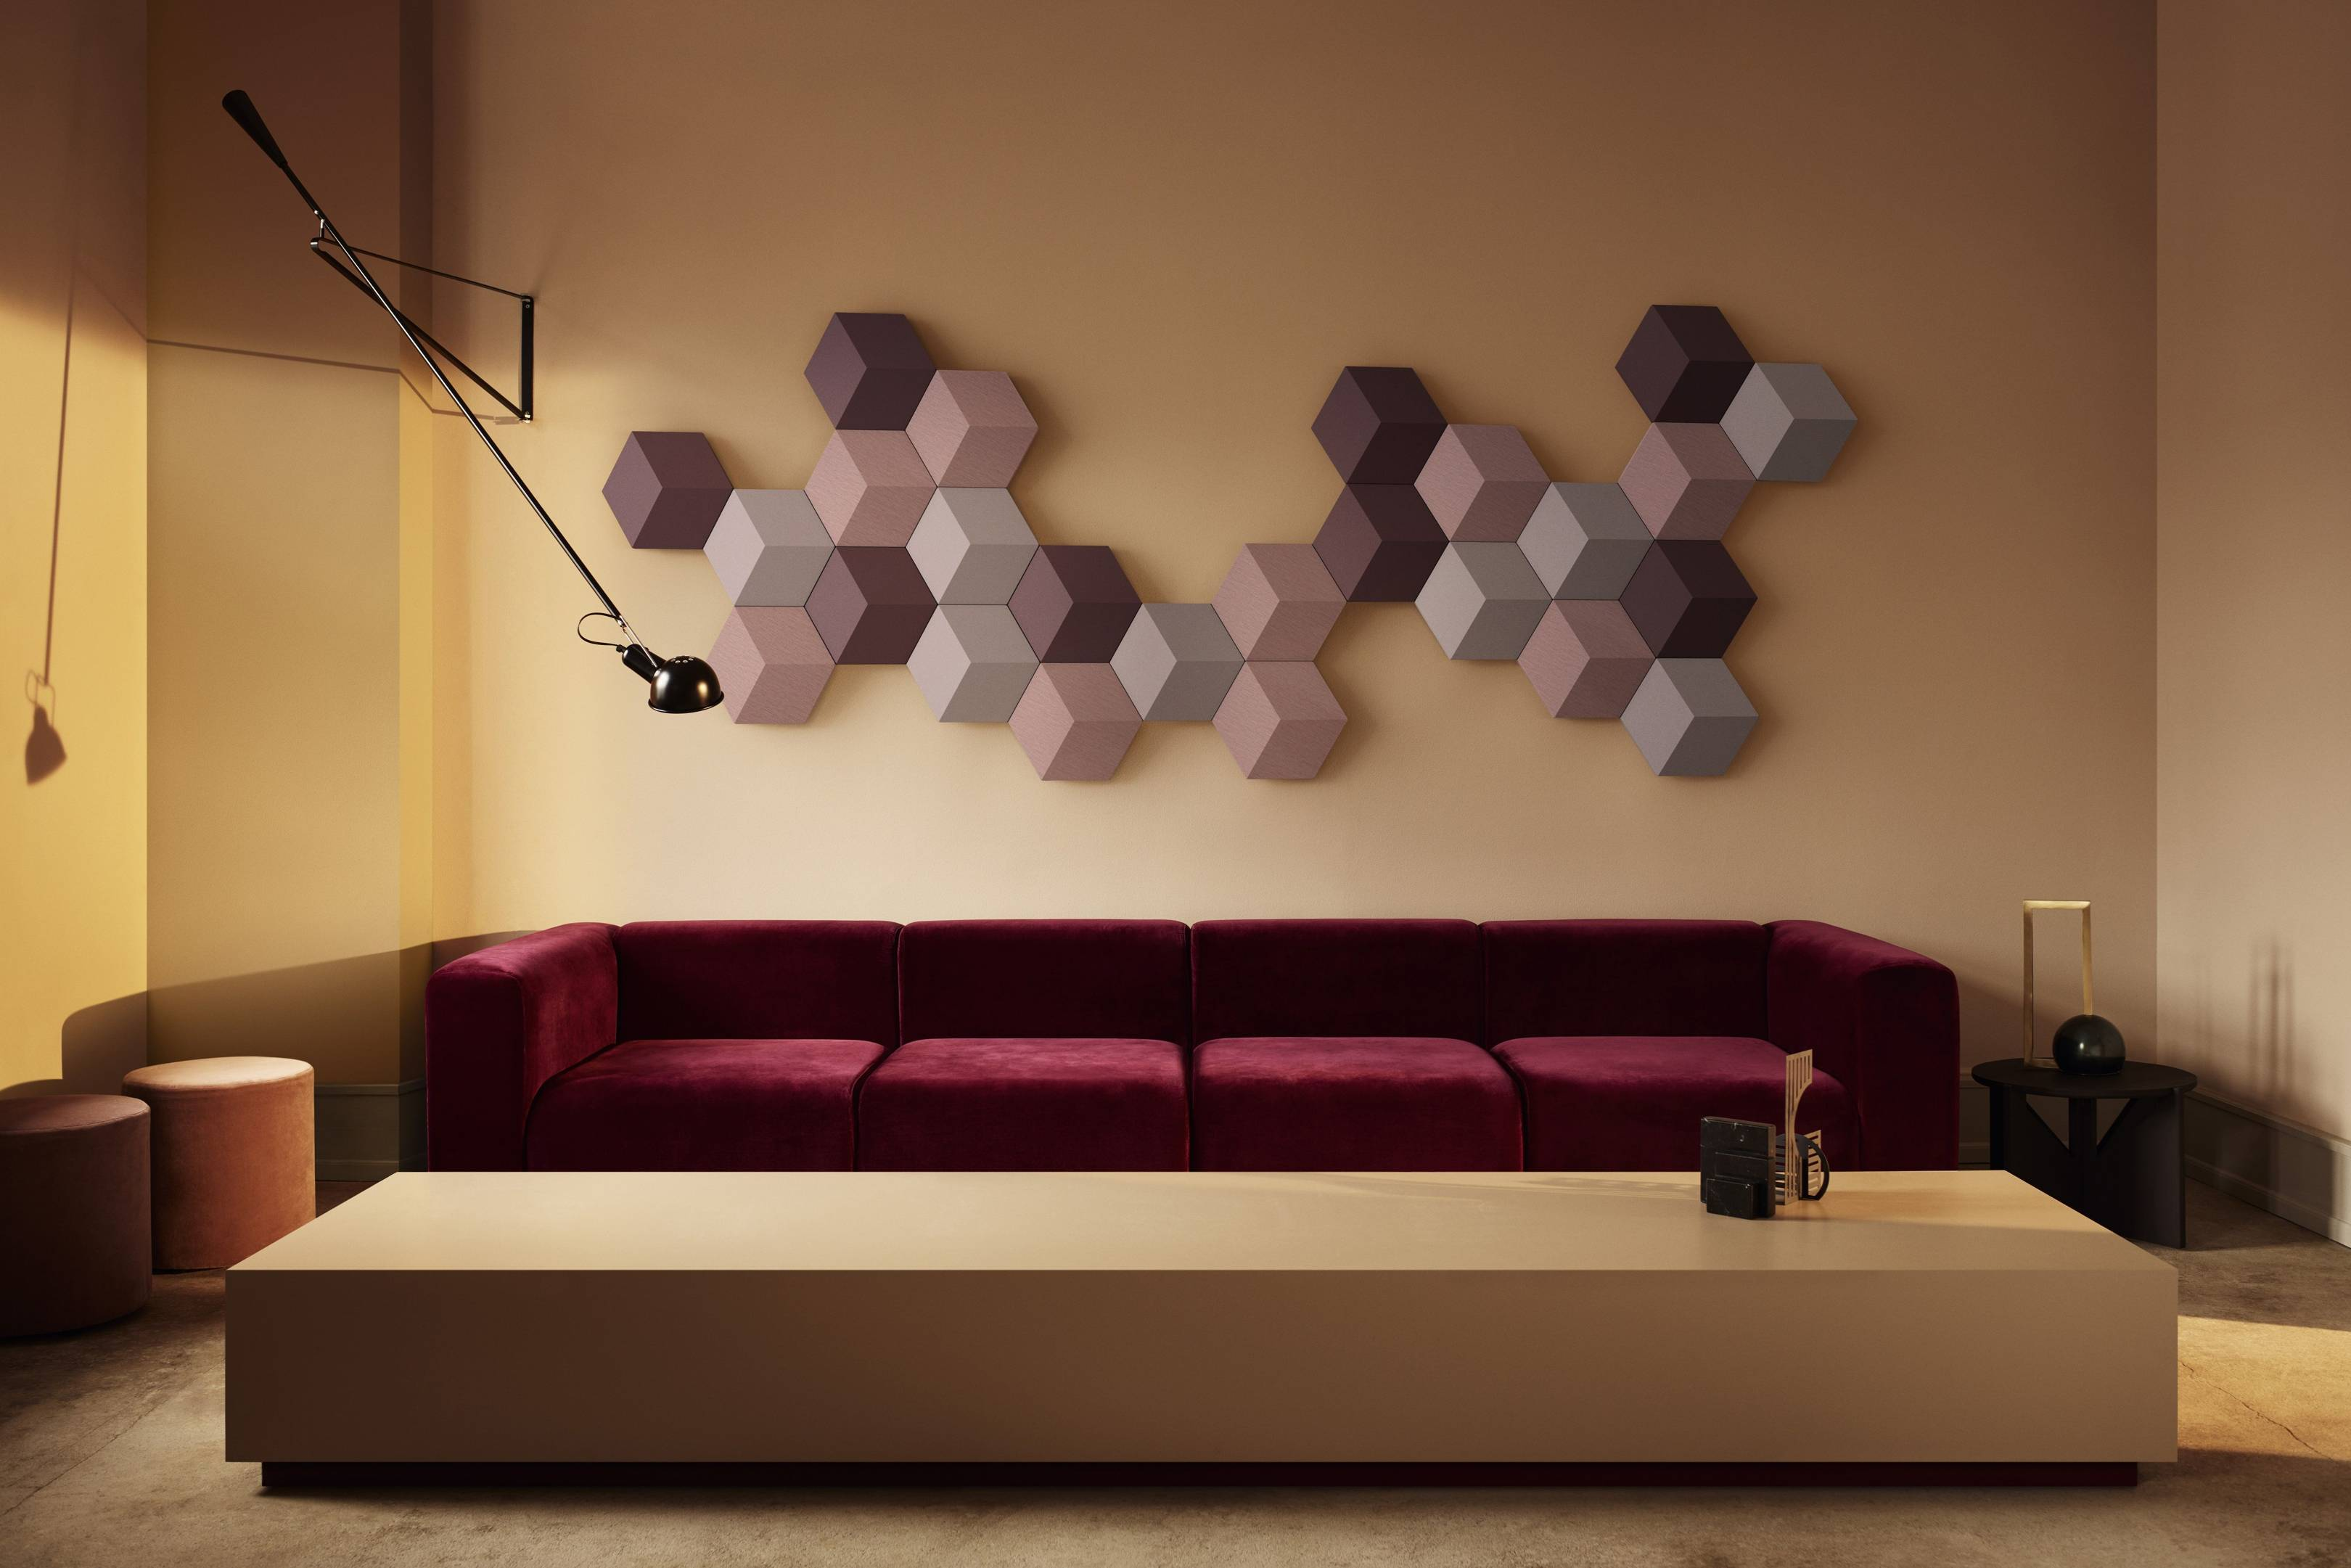 Bang & Olufsen's new wireless speaker system seamlessly clips together on your wall